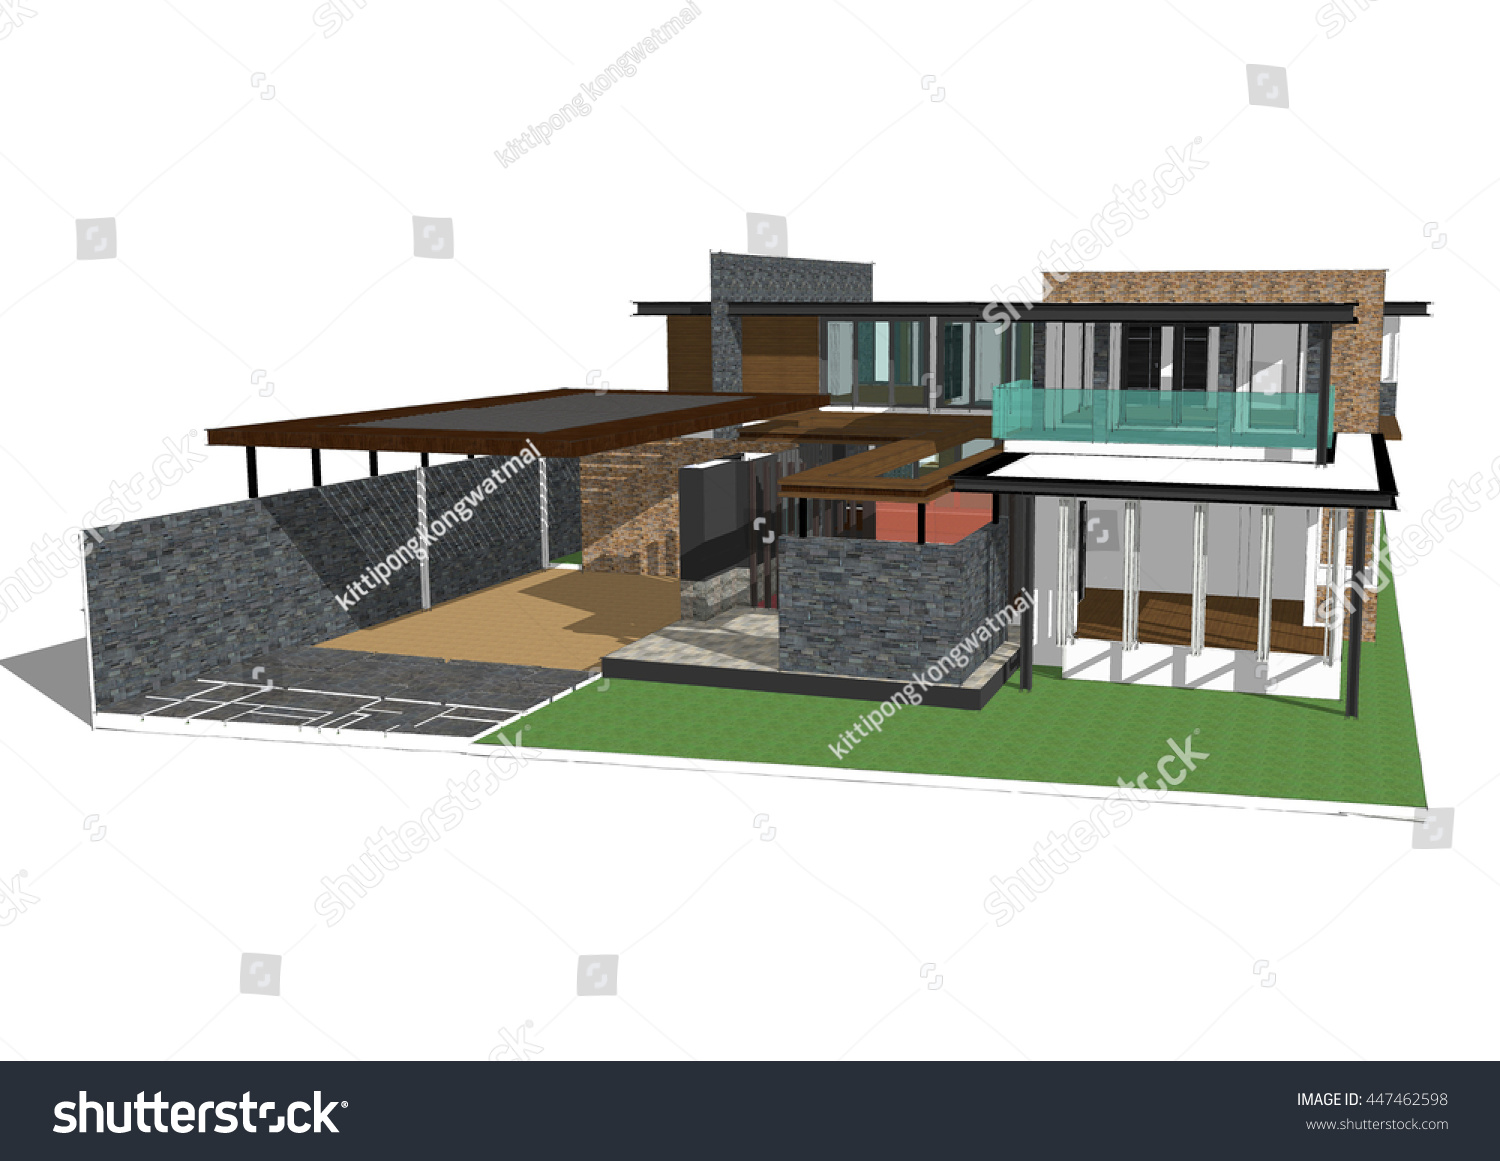 Sketchup Nederlands Royalty Free Stock Illustration Of 3 D Model House Sketchup Stock